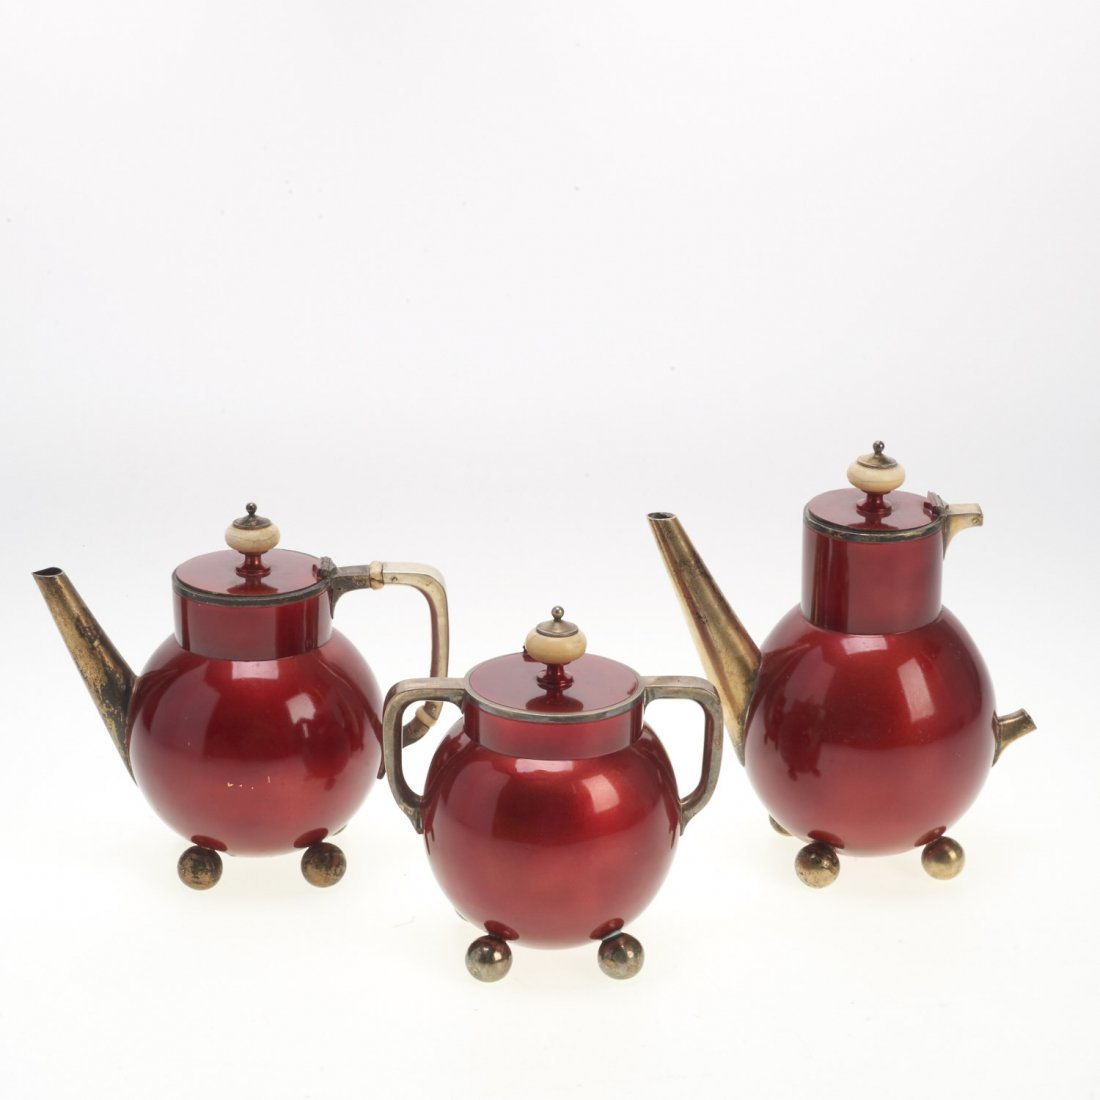 Early Russian Avant Garde silver enamel tea set